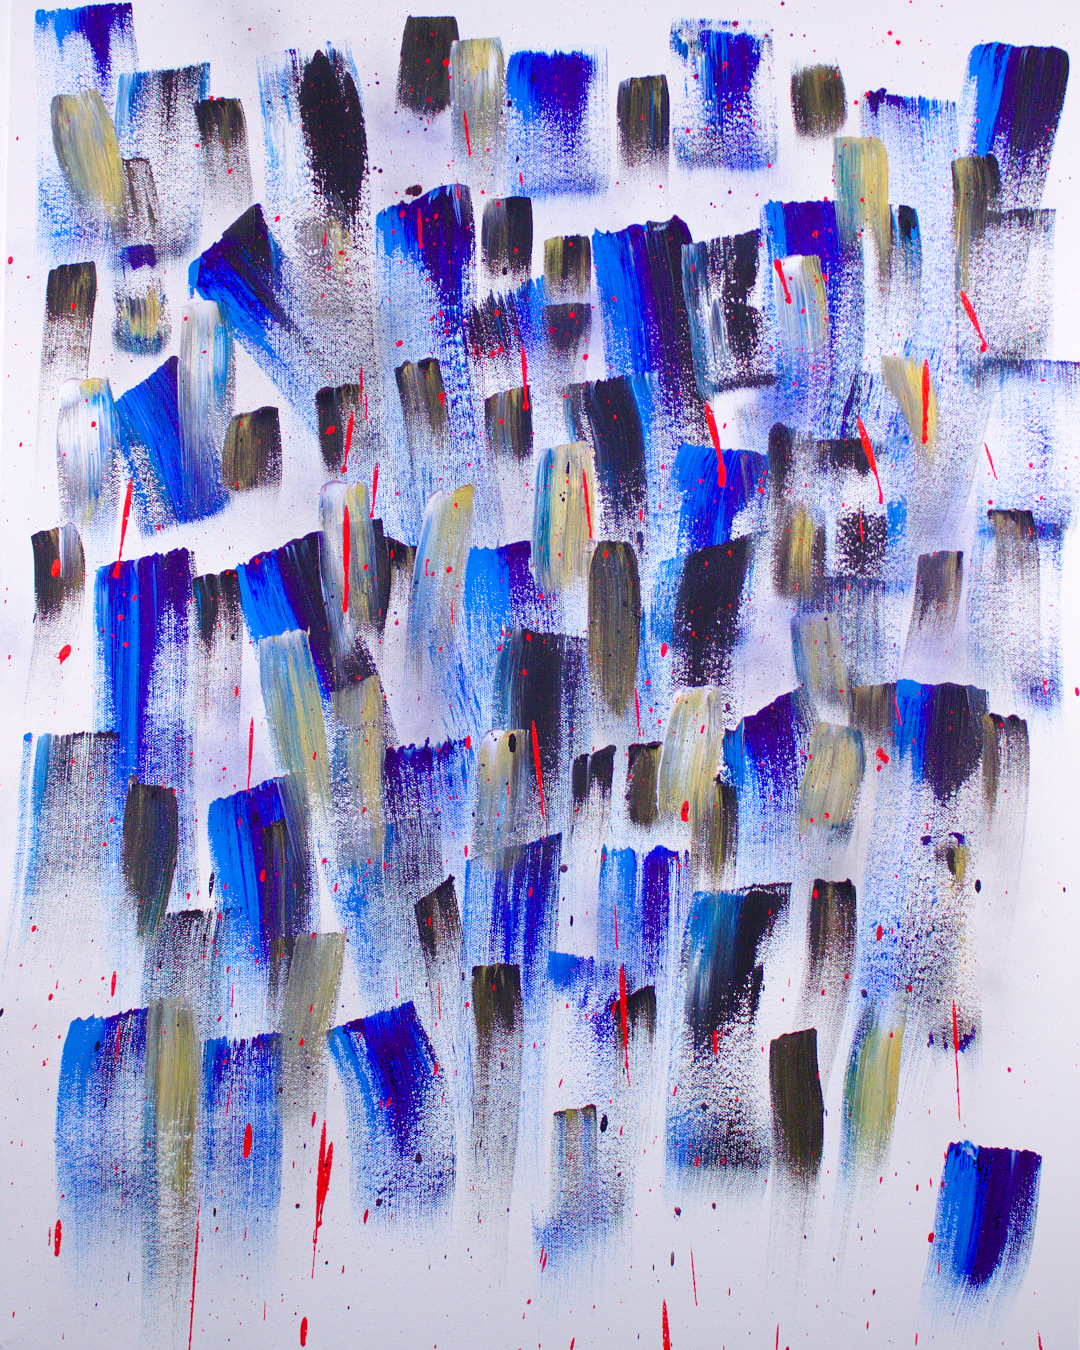 Abstract painting by the author. Blue, black, white and gold brush strokes with drips and splashes of bright red and grey fog